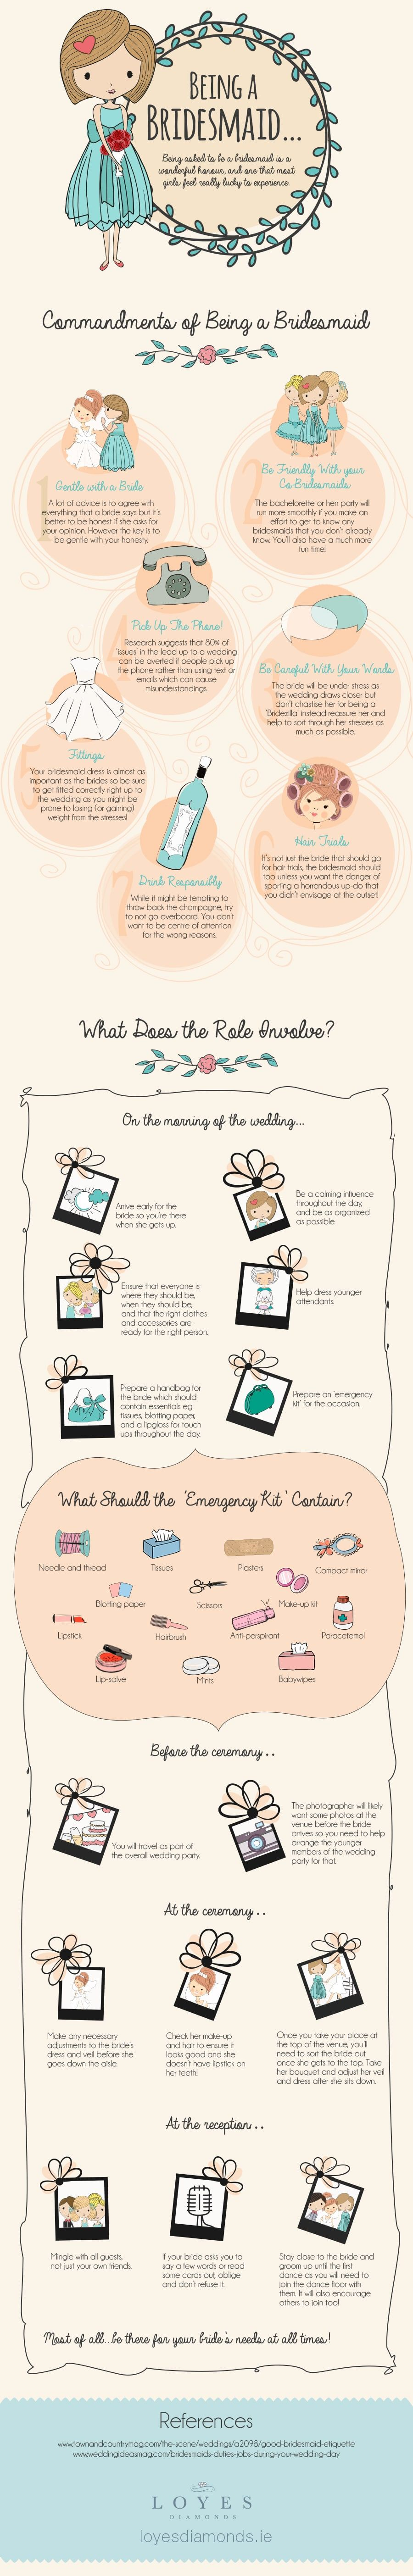 Being a Bridesmaid #Infographic